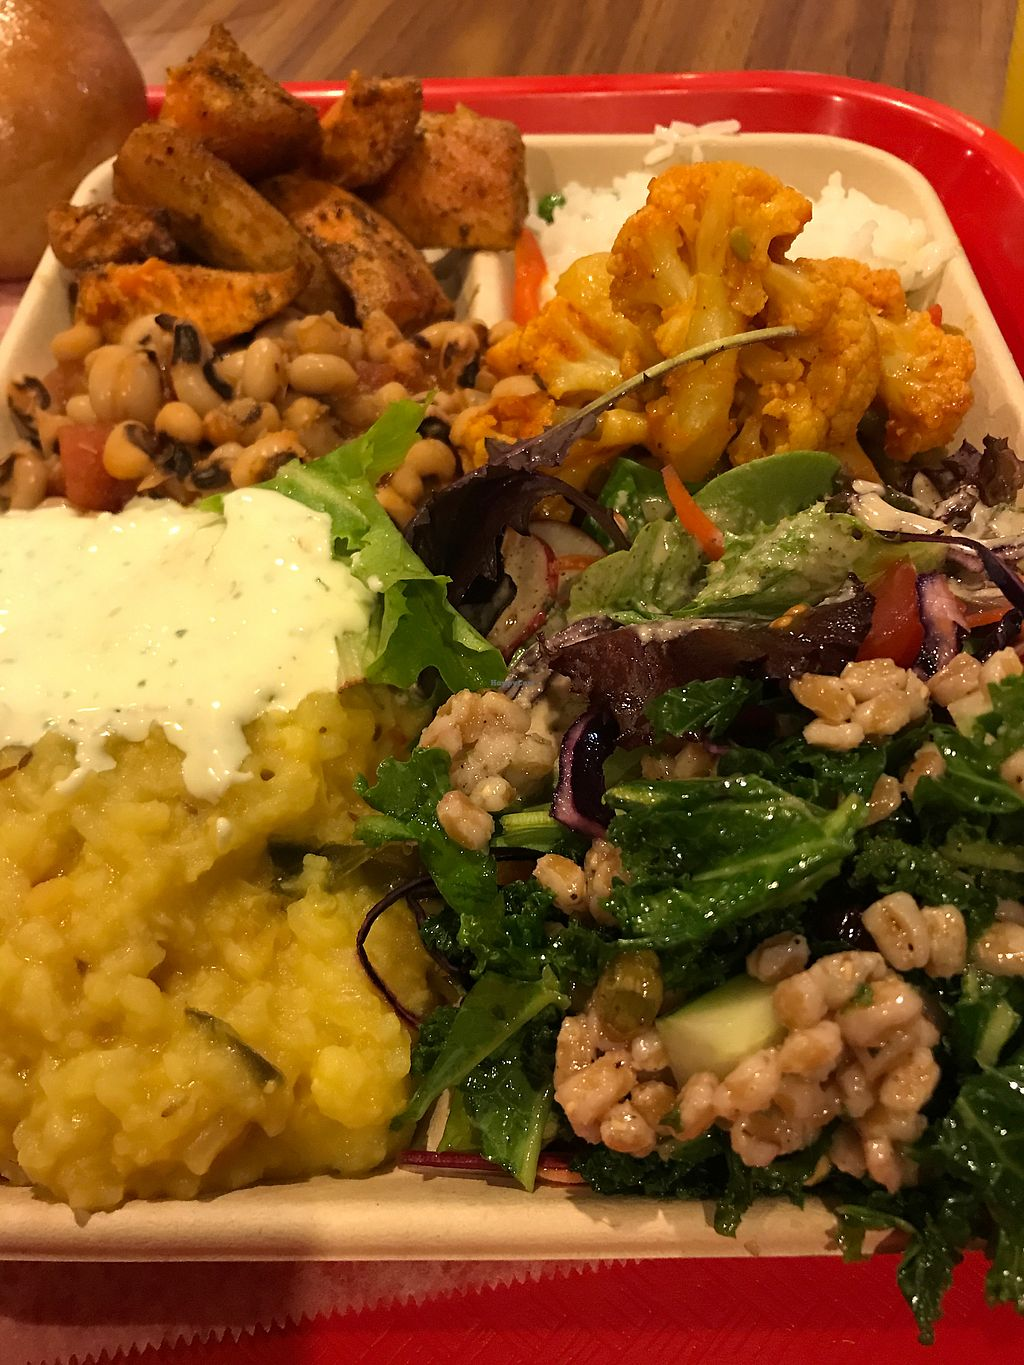 """Photo of Govinda's Vegetarian Lunch  by <a href=""""/members/profile/Birgit"""">Birgit</a> <br/>The complete meal <br/> December 18, 2017  - <a href='/contact/abuse/image/79125/337021'>Report</a>"""